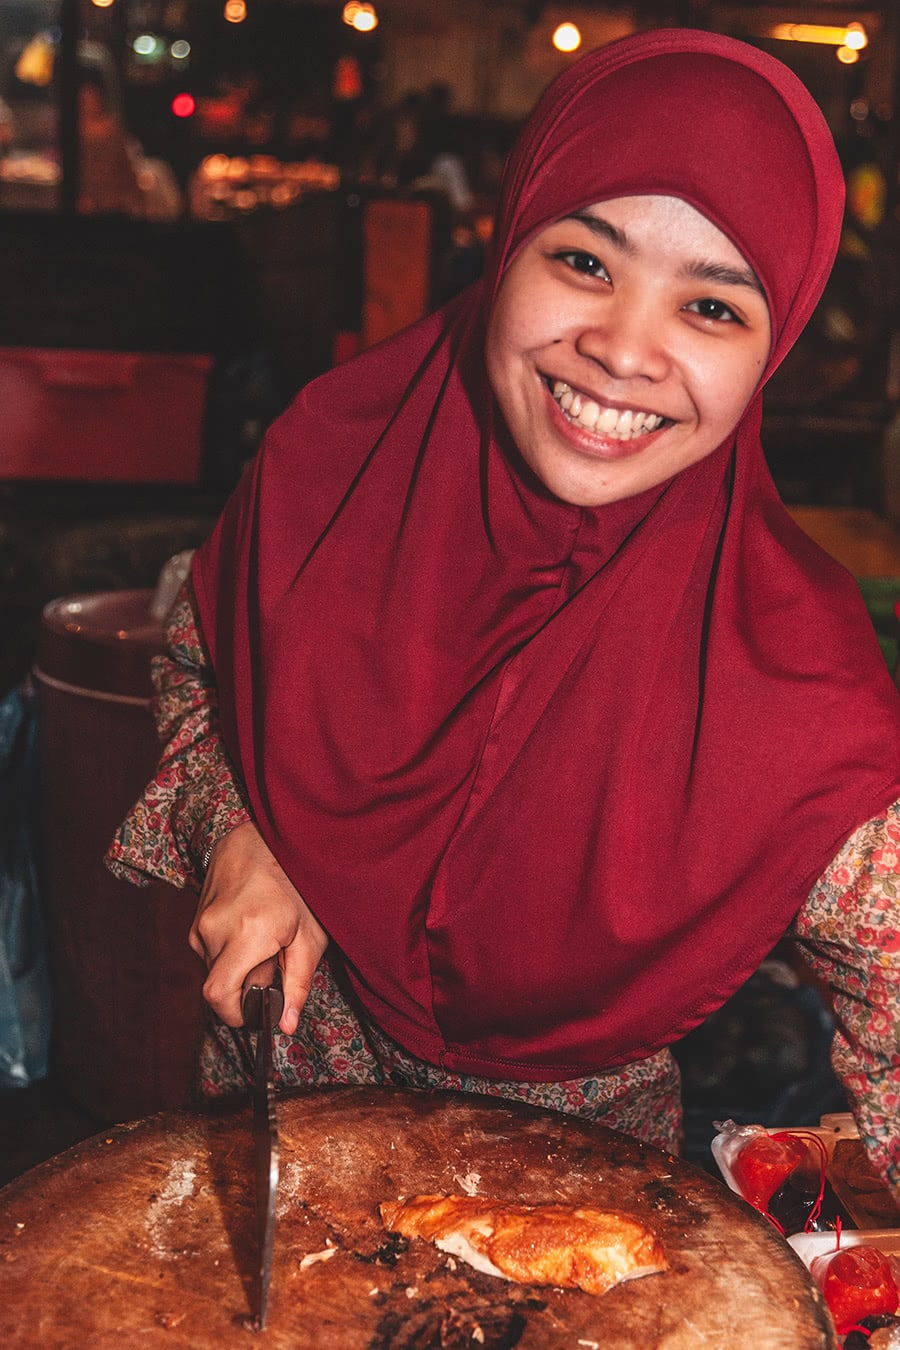 Smiling worker at Pasar Gadong night market in Bandar Seri Begawan, Brunei.